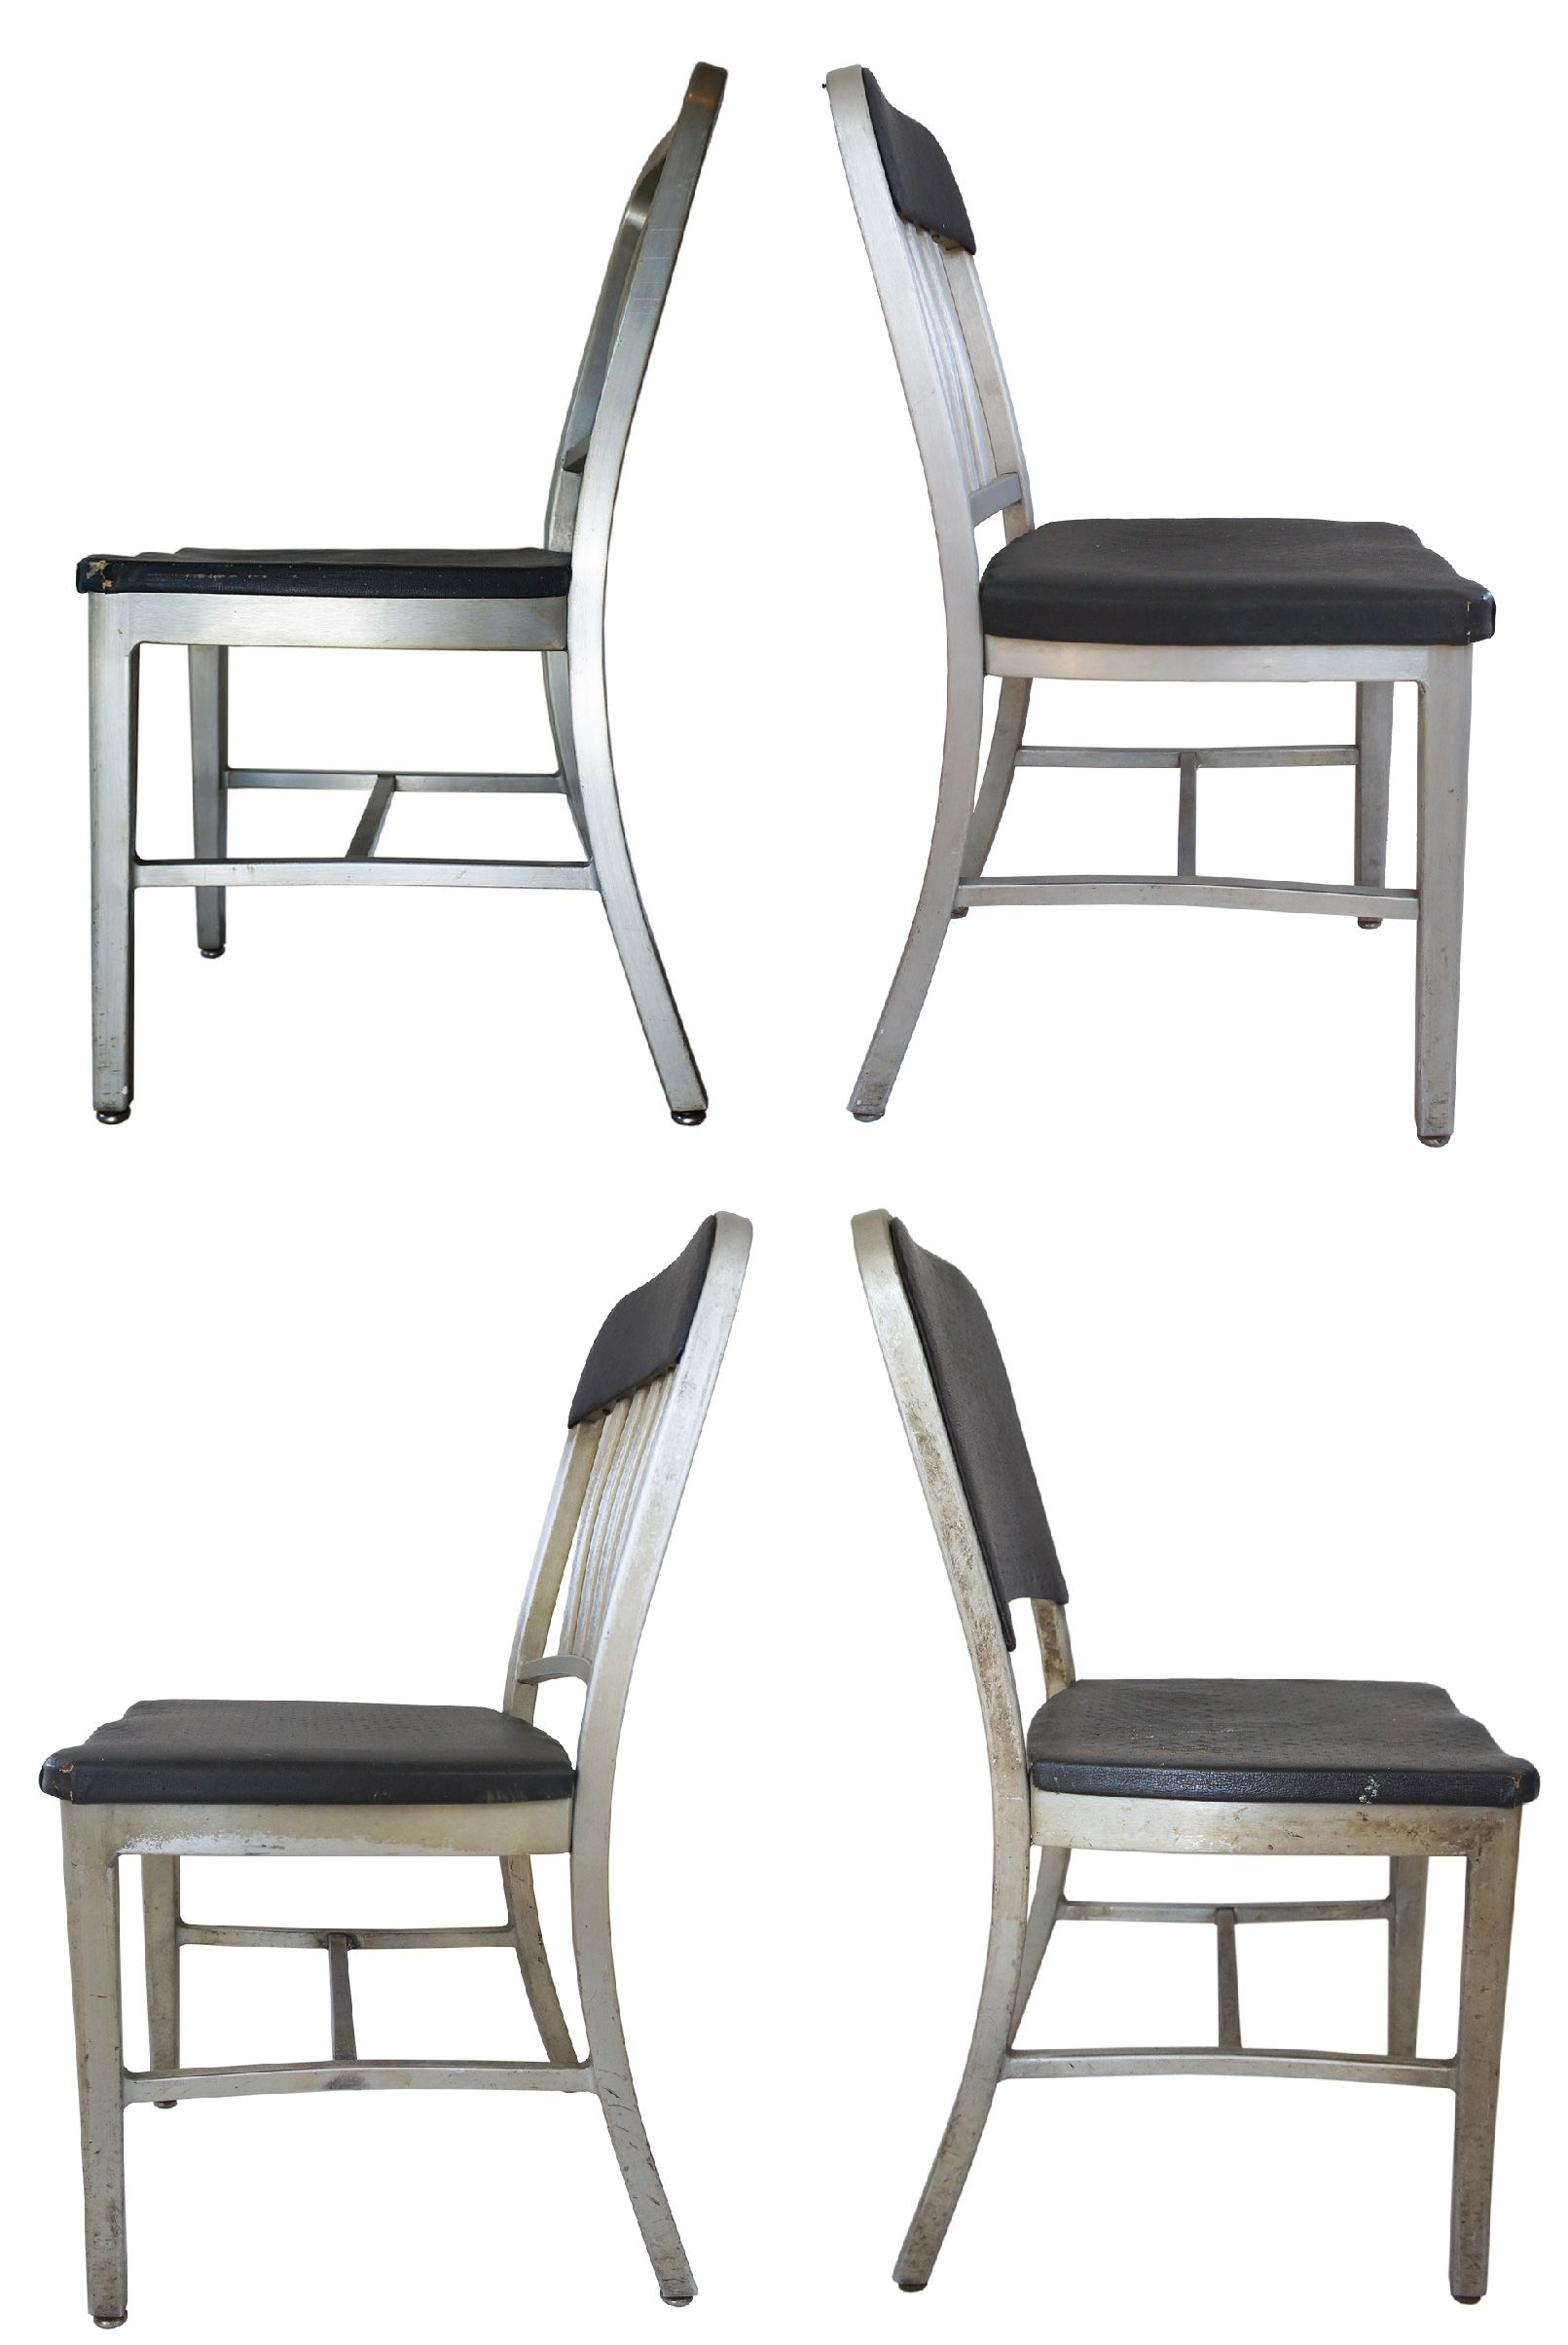 Emeco Aluminum Navy Chairs, Assorted   Set Of 4   Image 3 Of 5